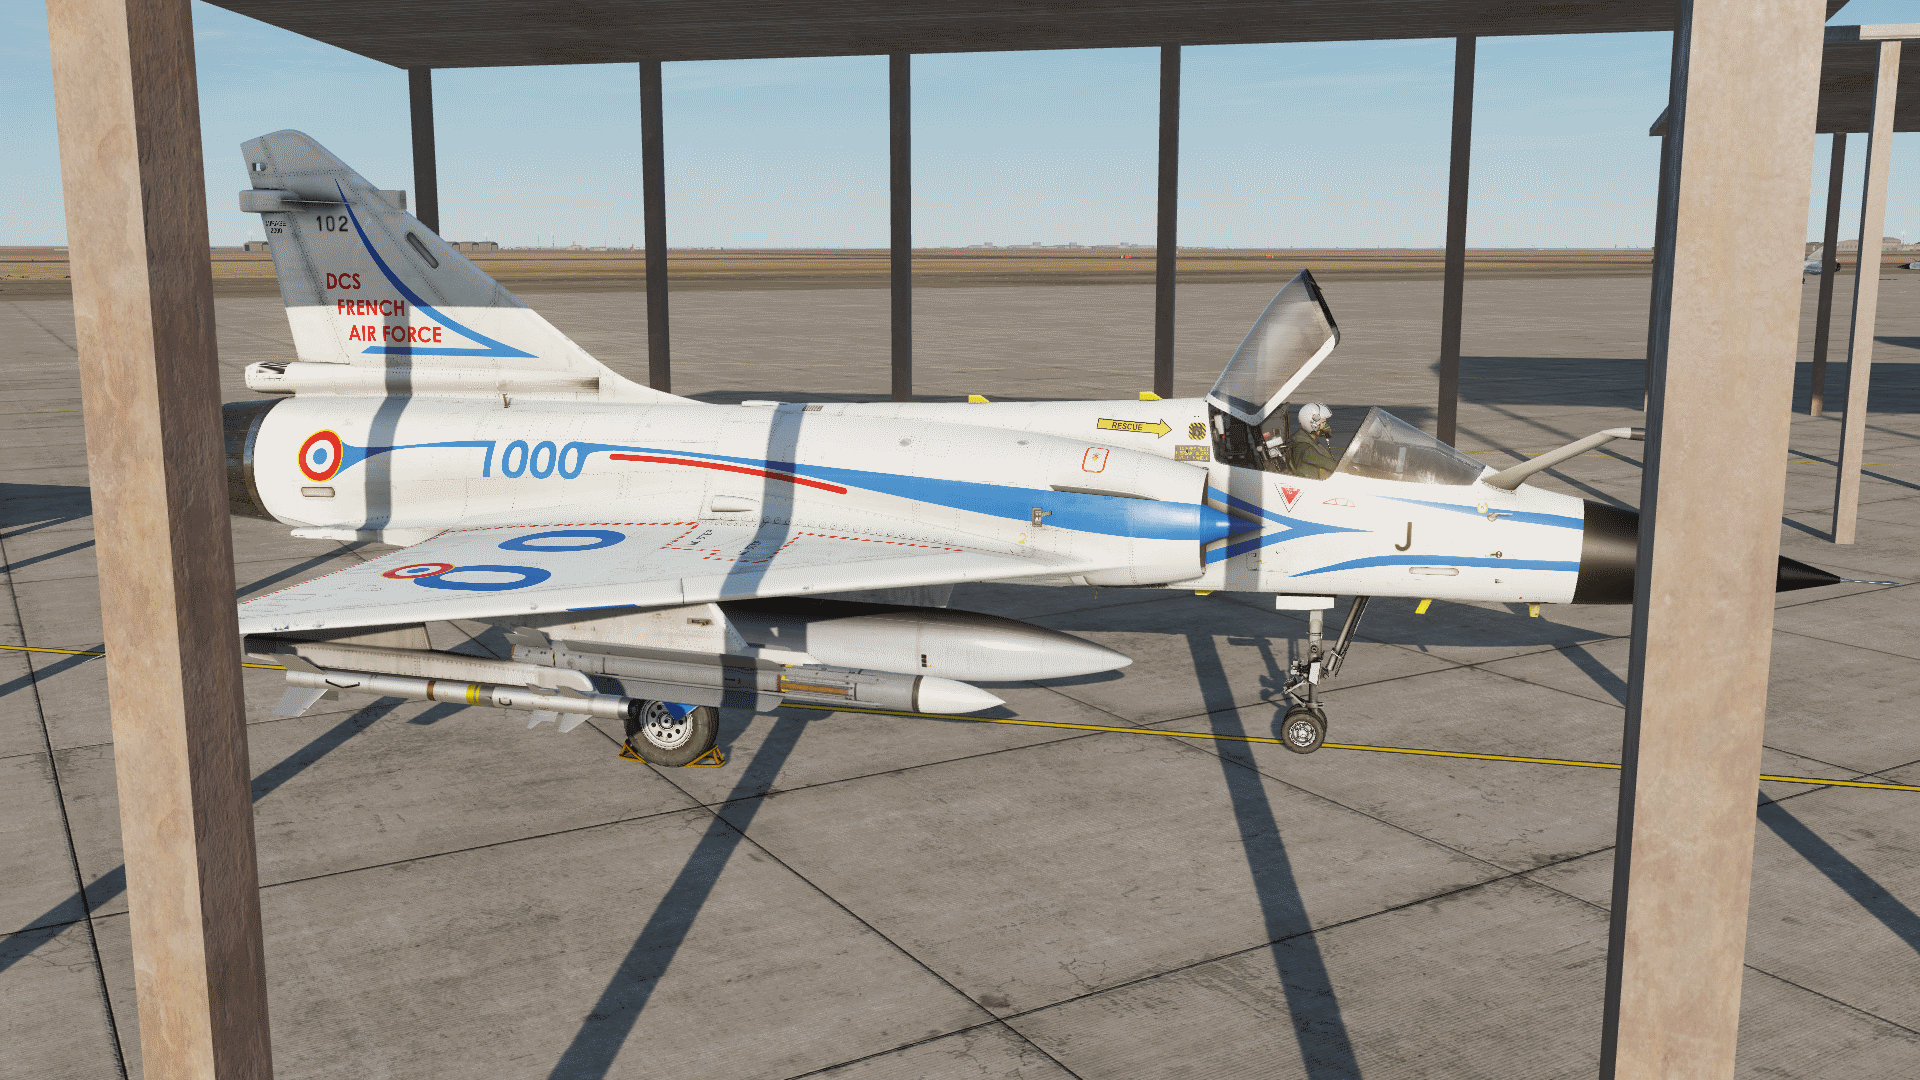 DCS French Air Force : 1.000 subs